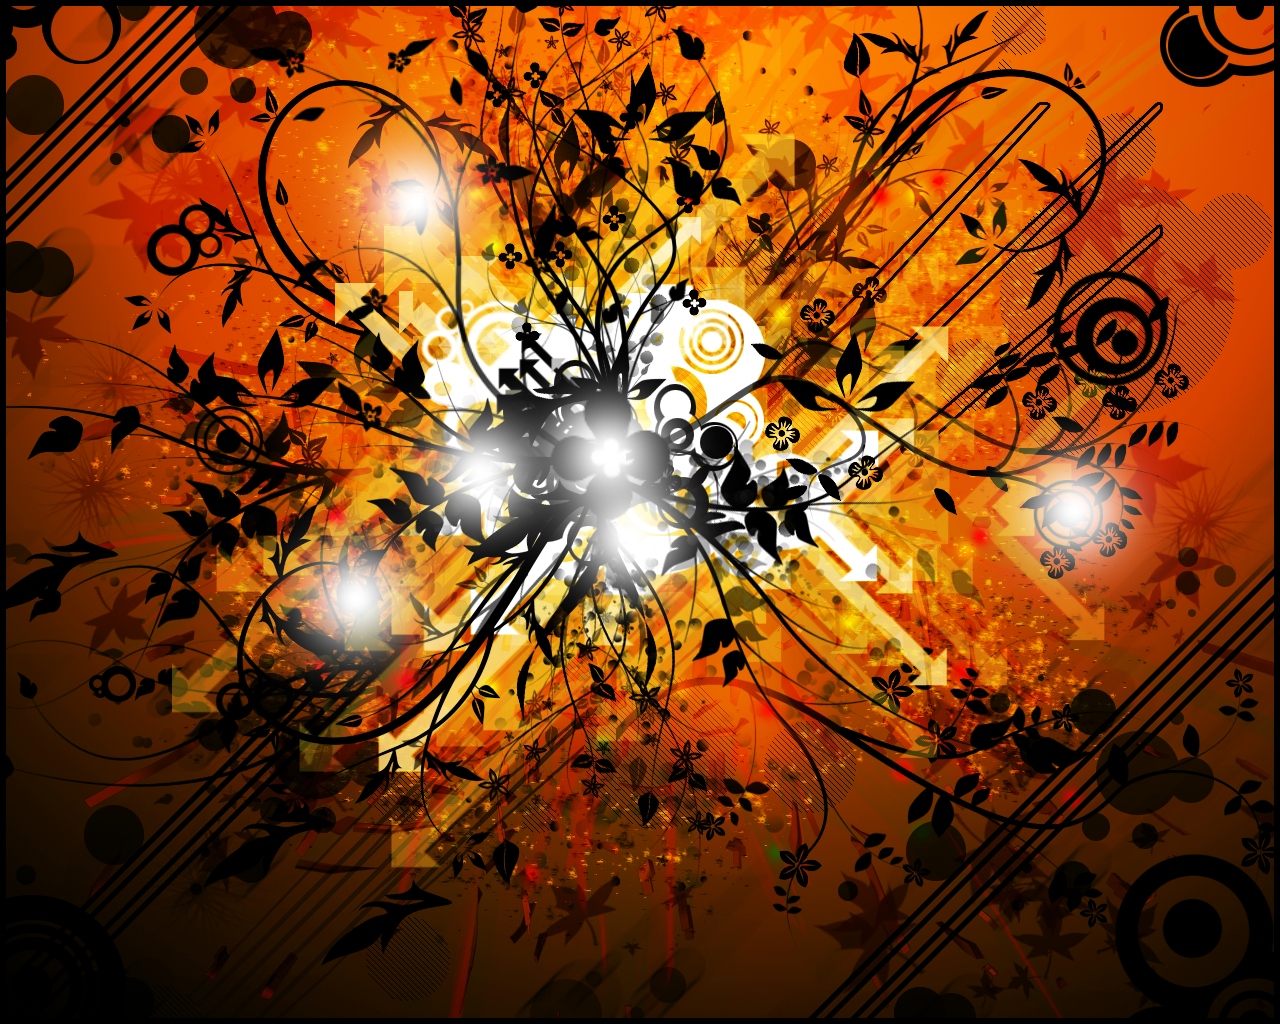 My Desktop image Abstract_Vector_Wallpaper_by_EmoGilly